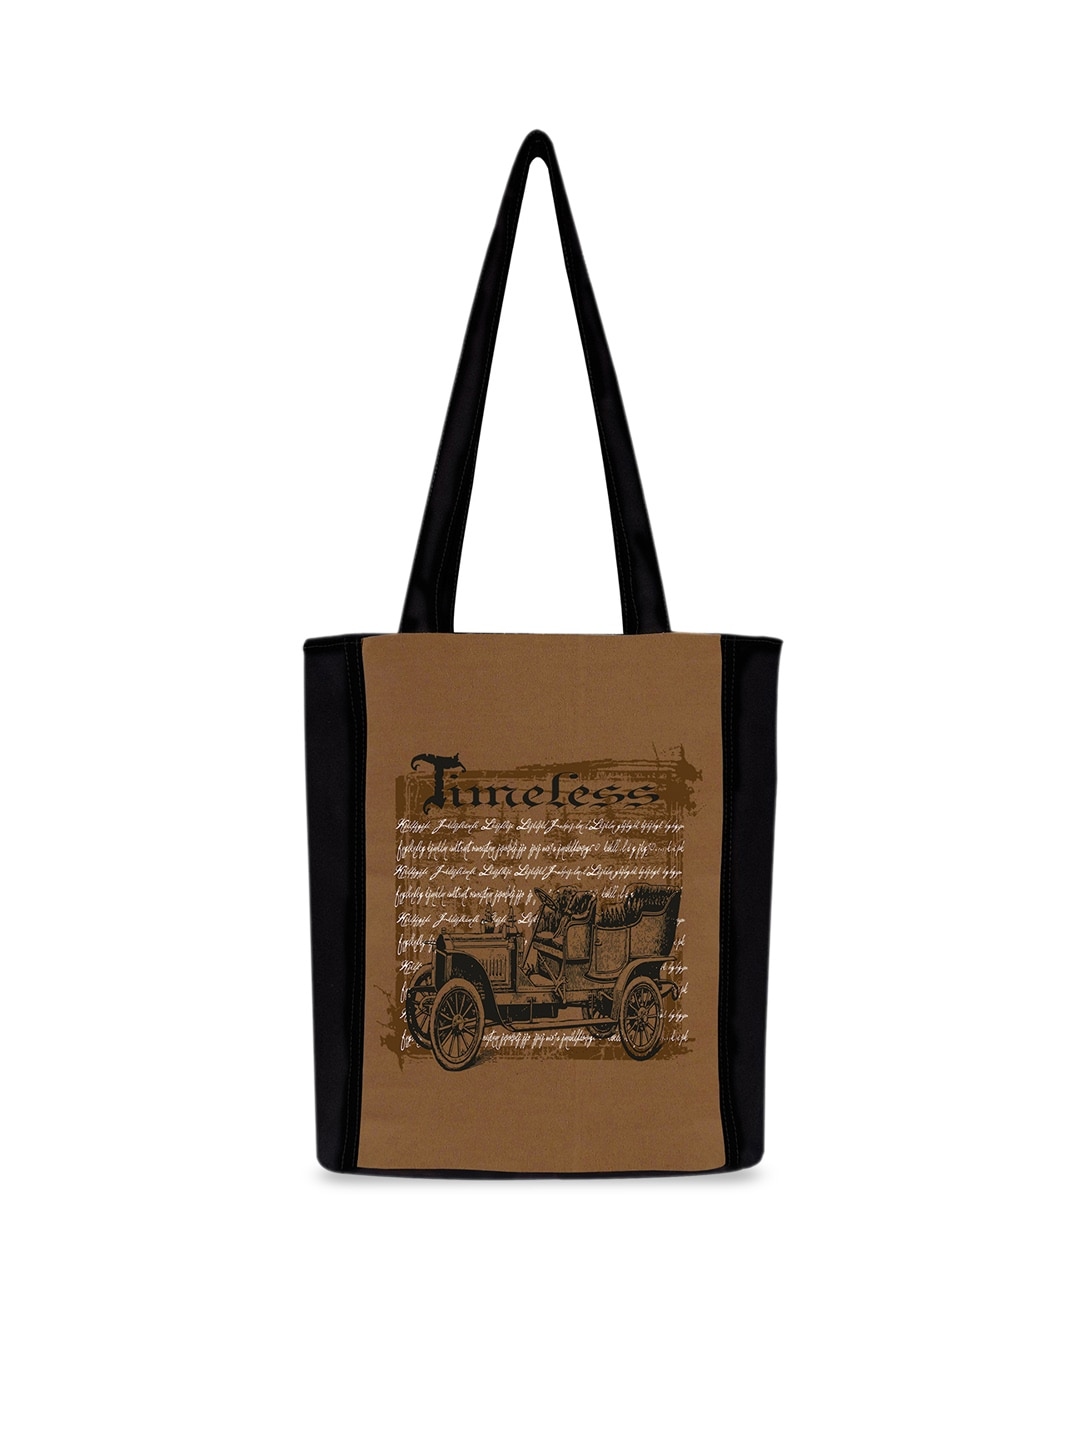 ff5429bb9e6eb5 Tote Bag - Buy Latest Tote Bags For Women   Girls Online